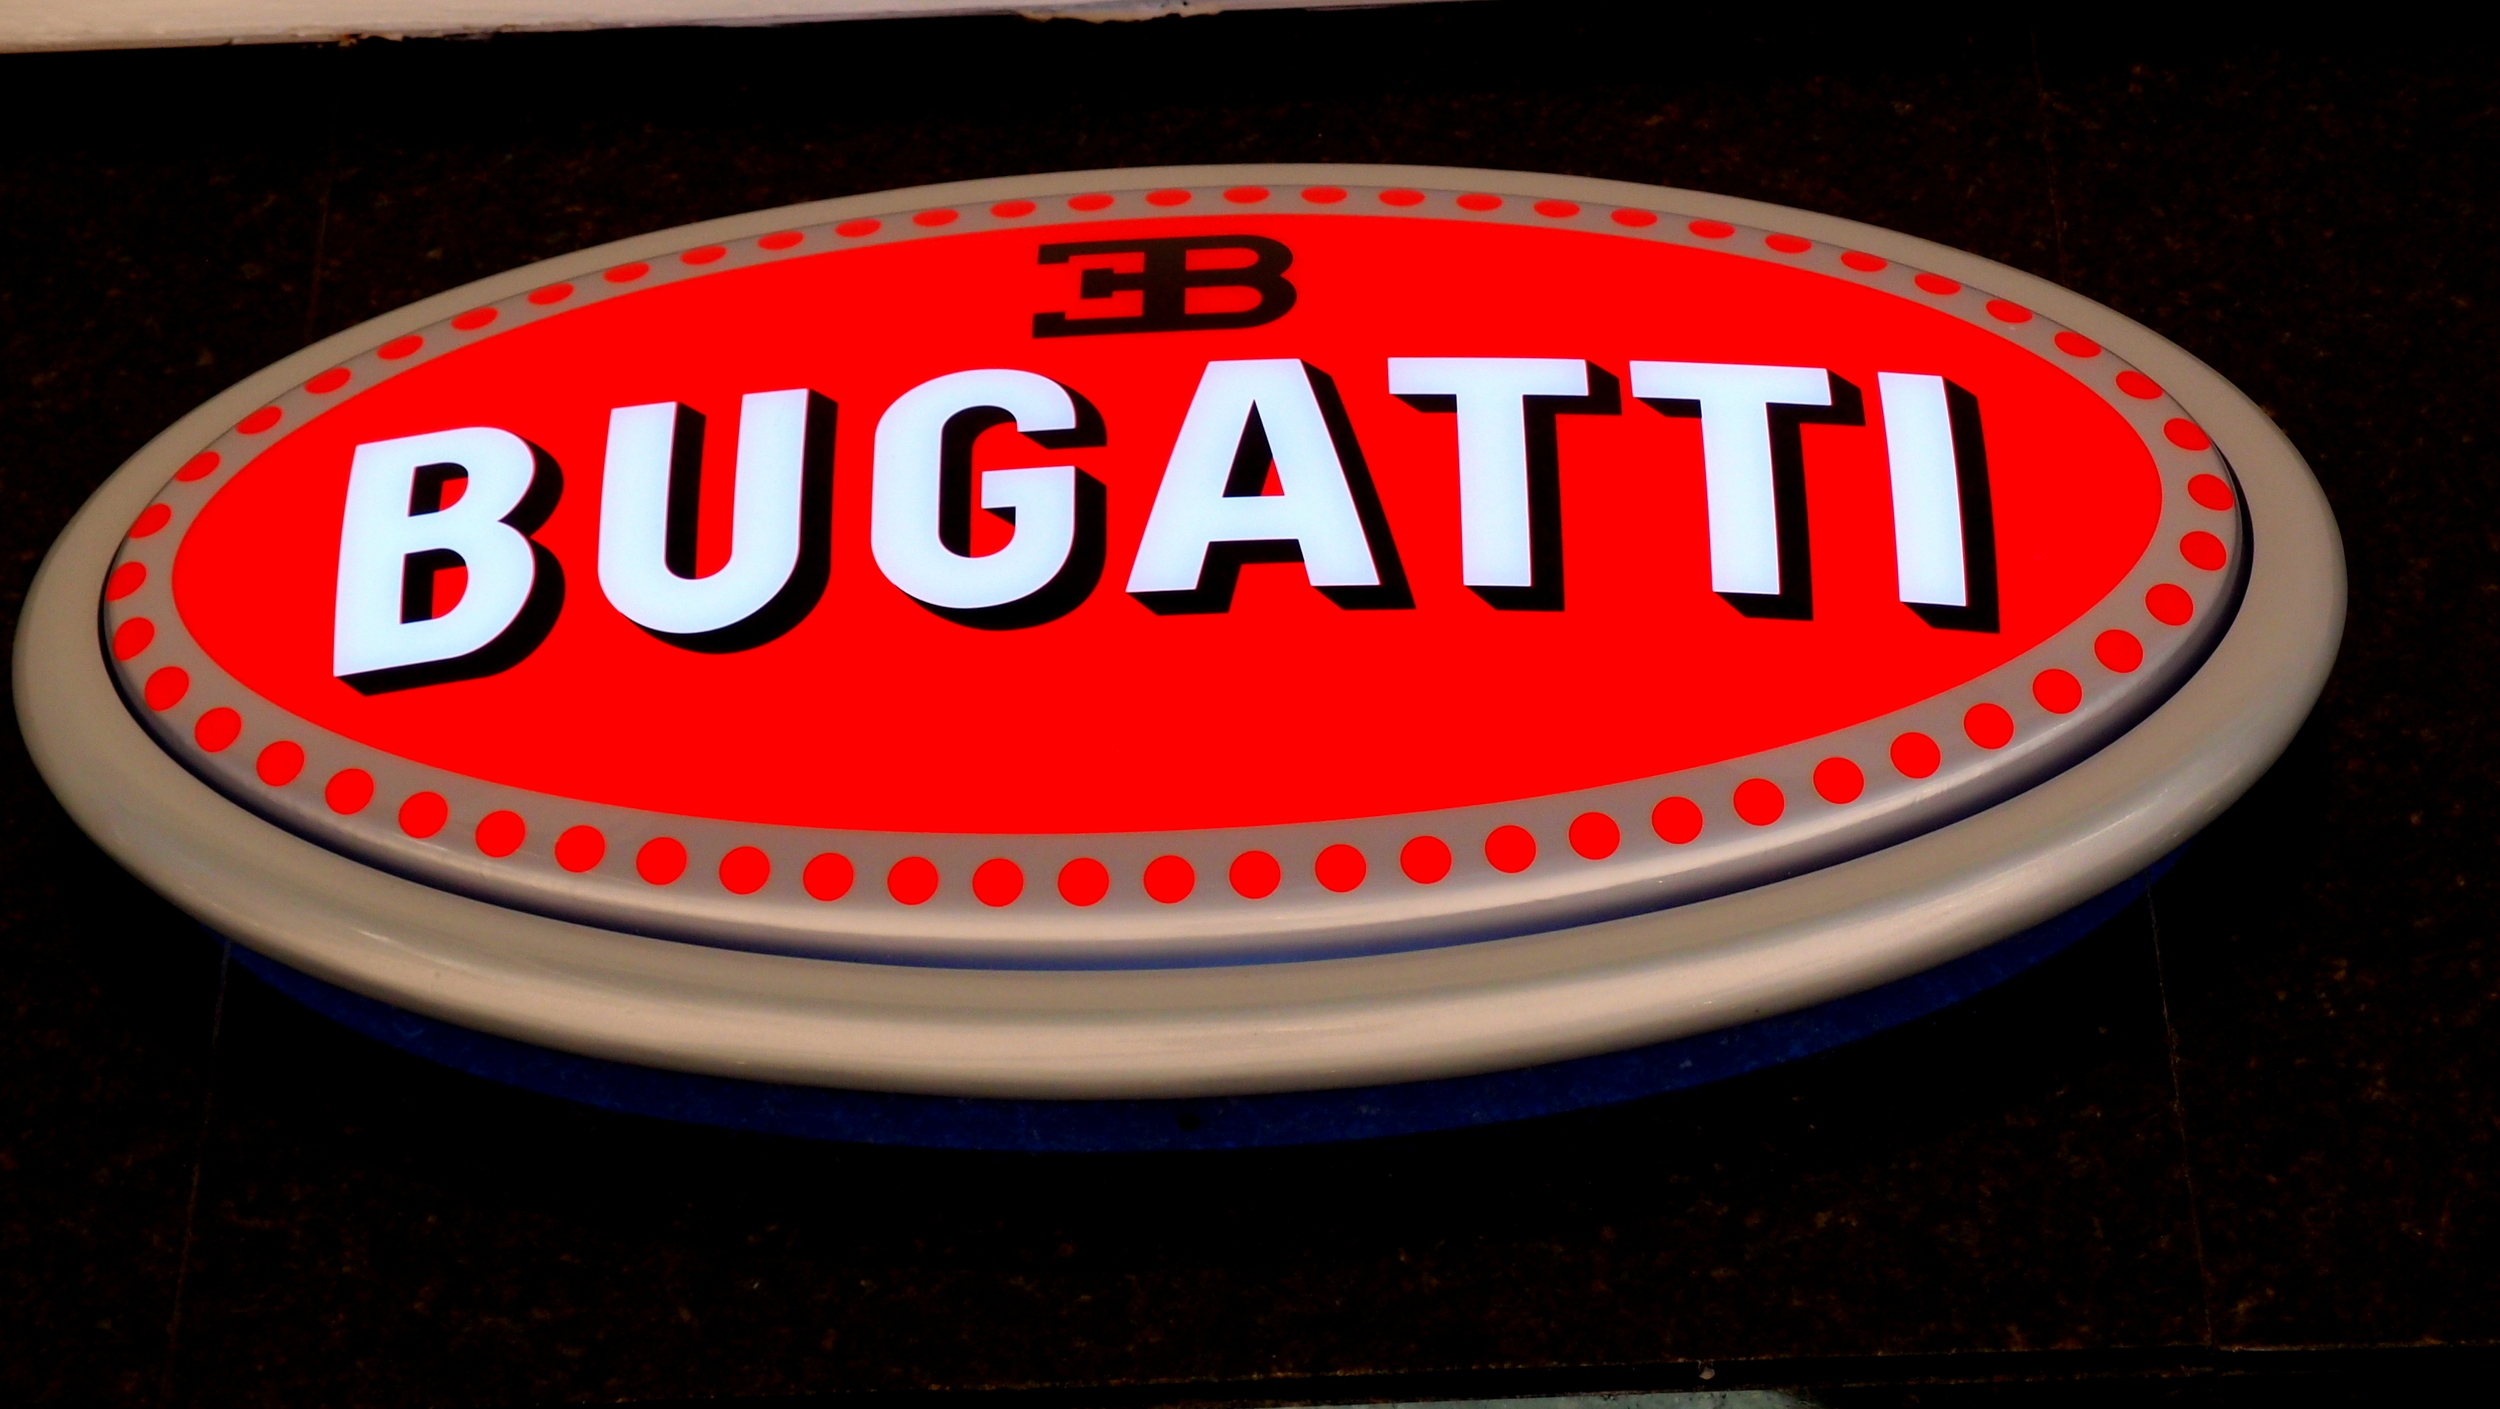 The new Bugatti showroom at Hutchison House in Central is still NOT open which is very frustrating - they have a car in the showroom but it is under a large sheet! so the badge will have to do for now